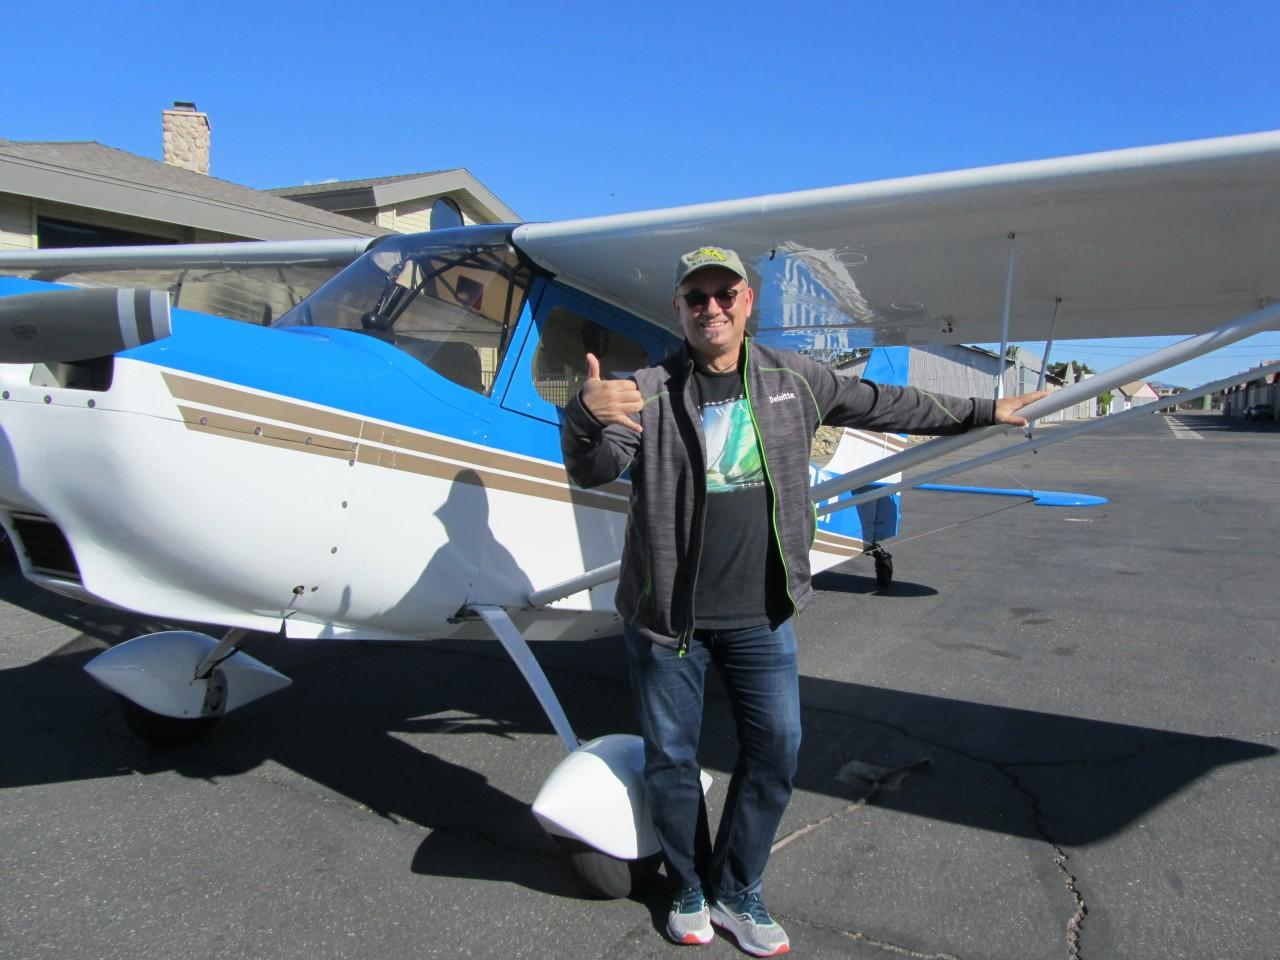 Tailwheel Endorsement - Robert Schmid!